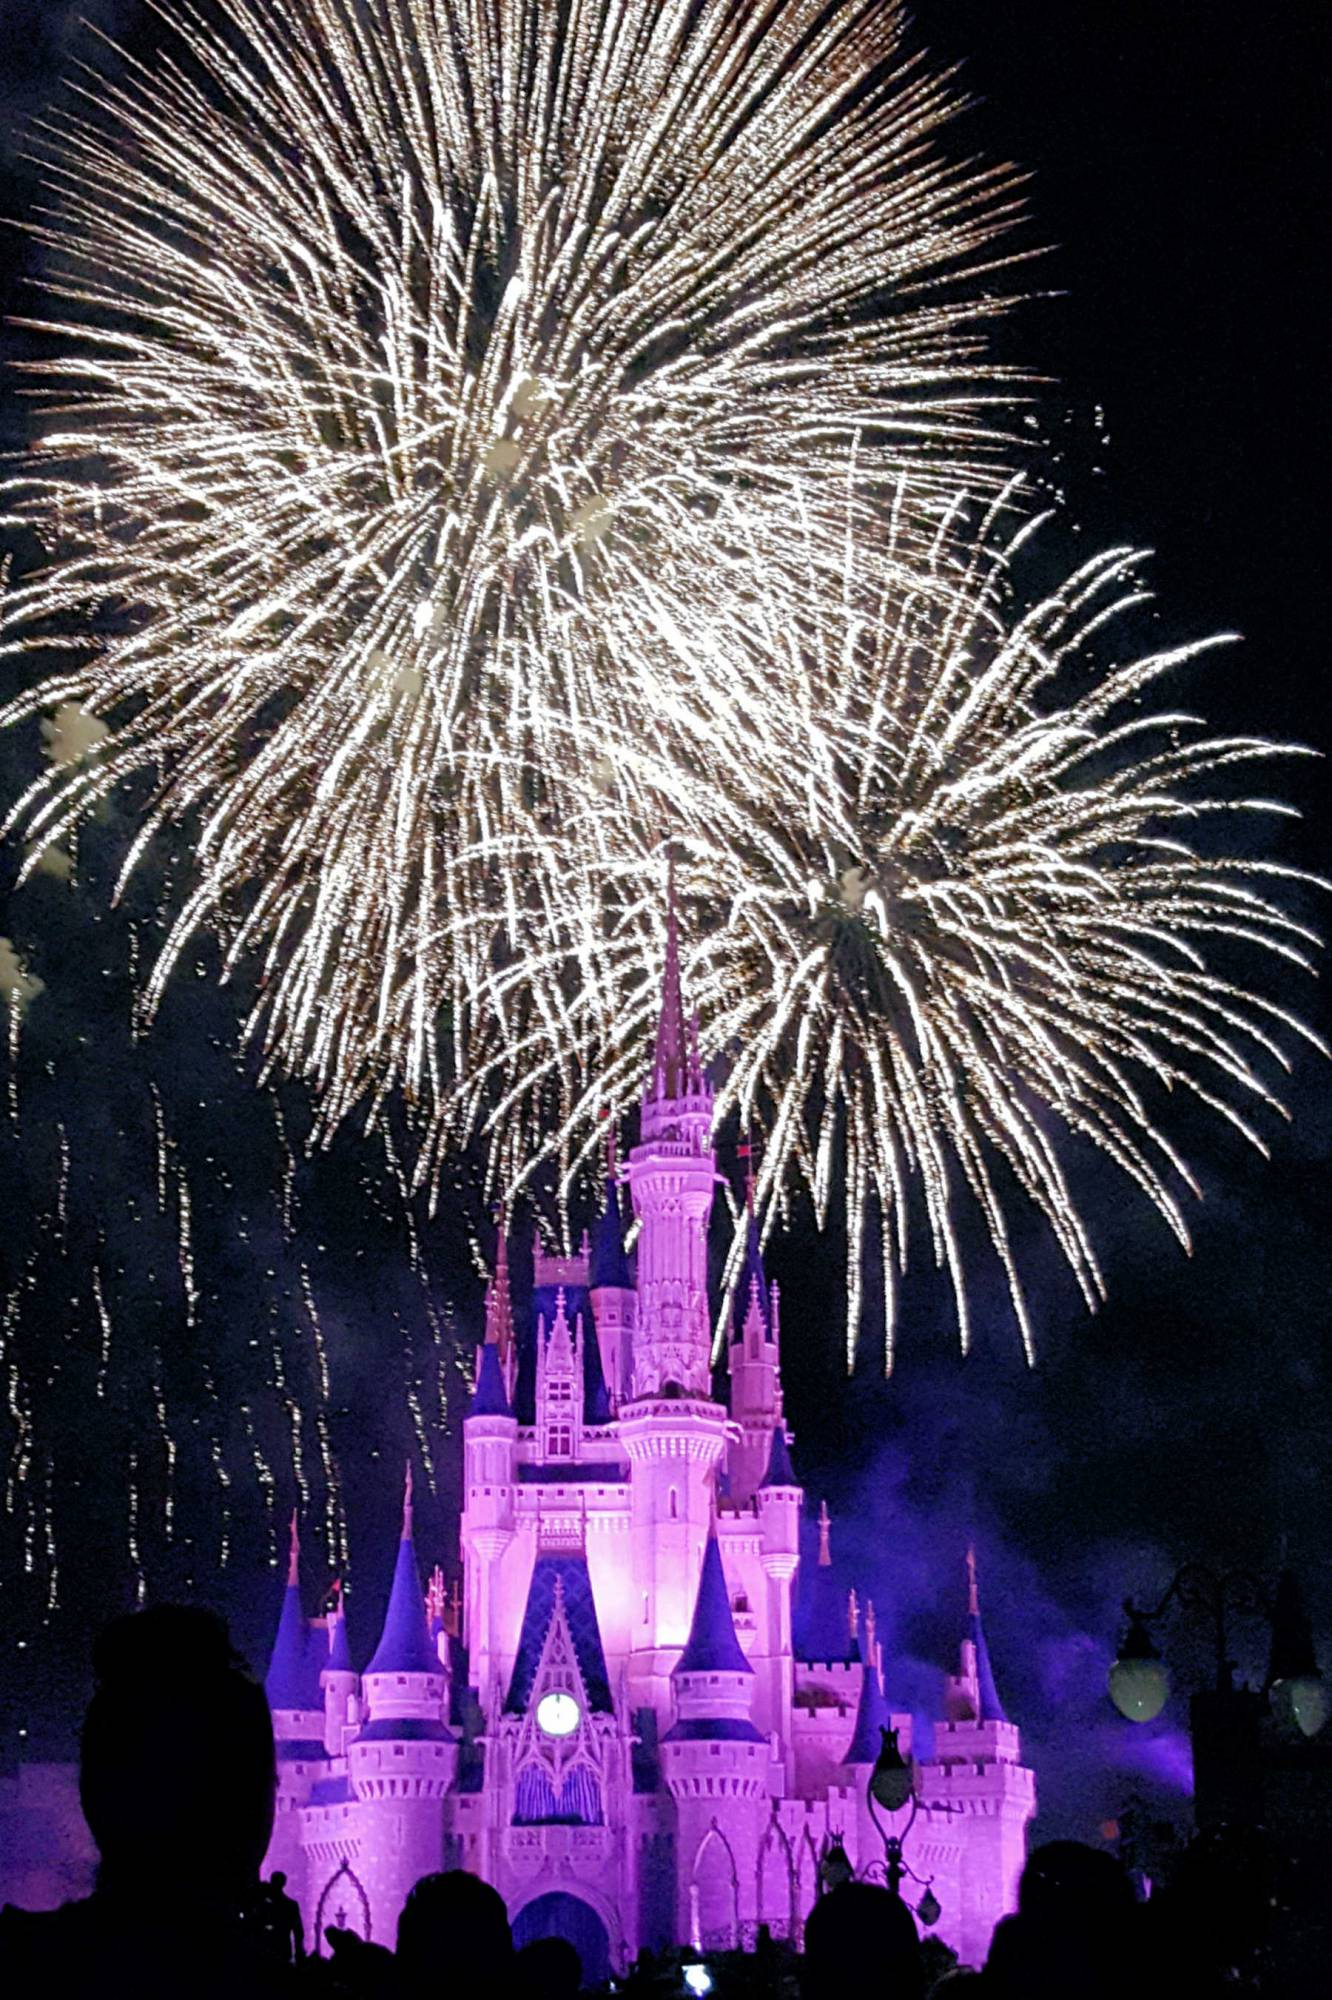 Saying a fond farewell to 'Wishes' at the Magic Kingdom | PassPorter.com